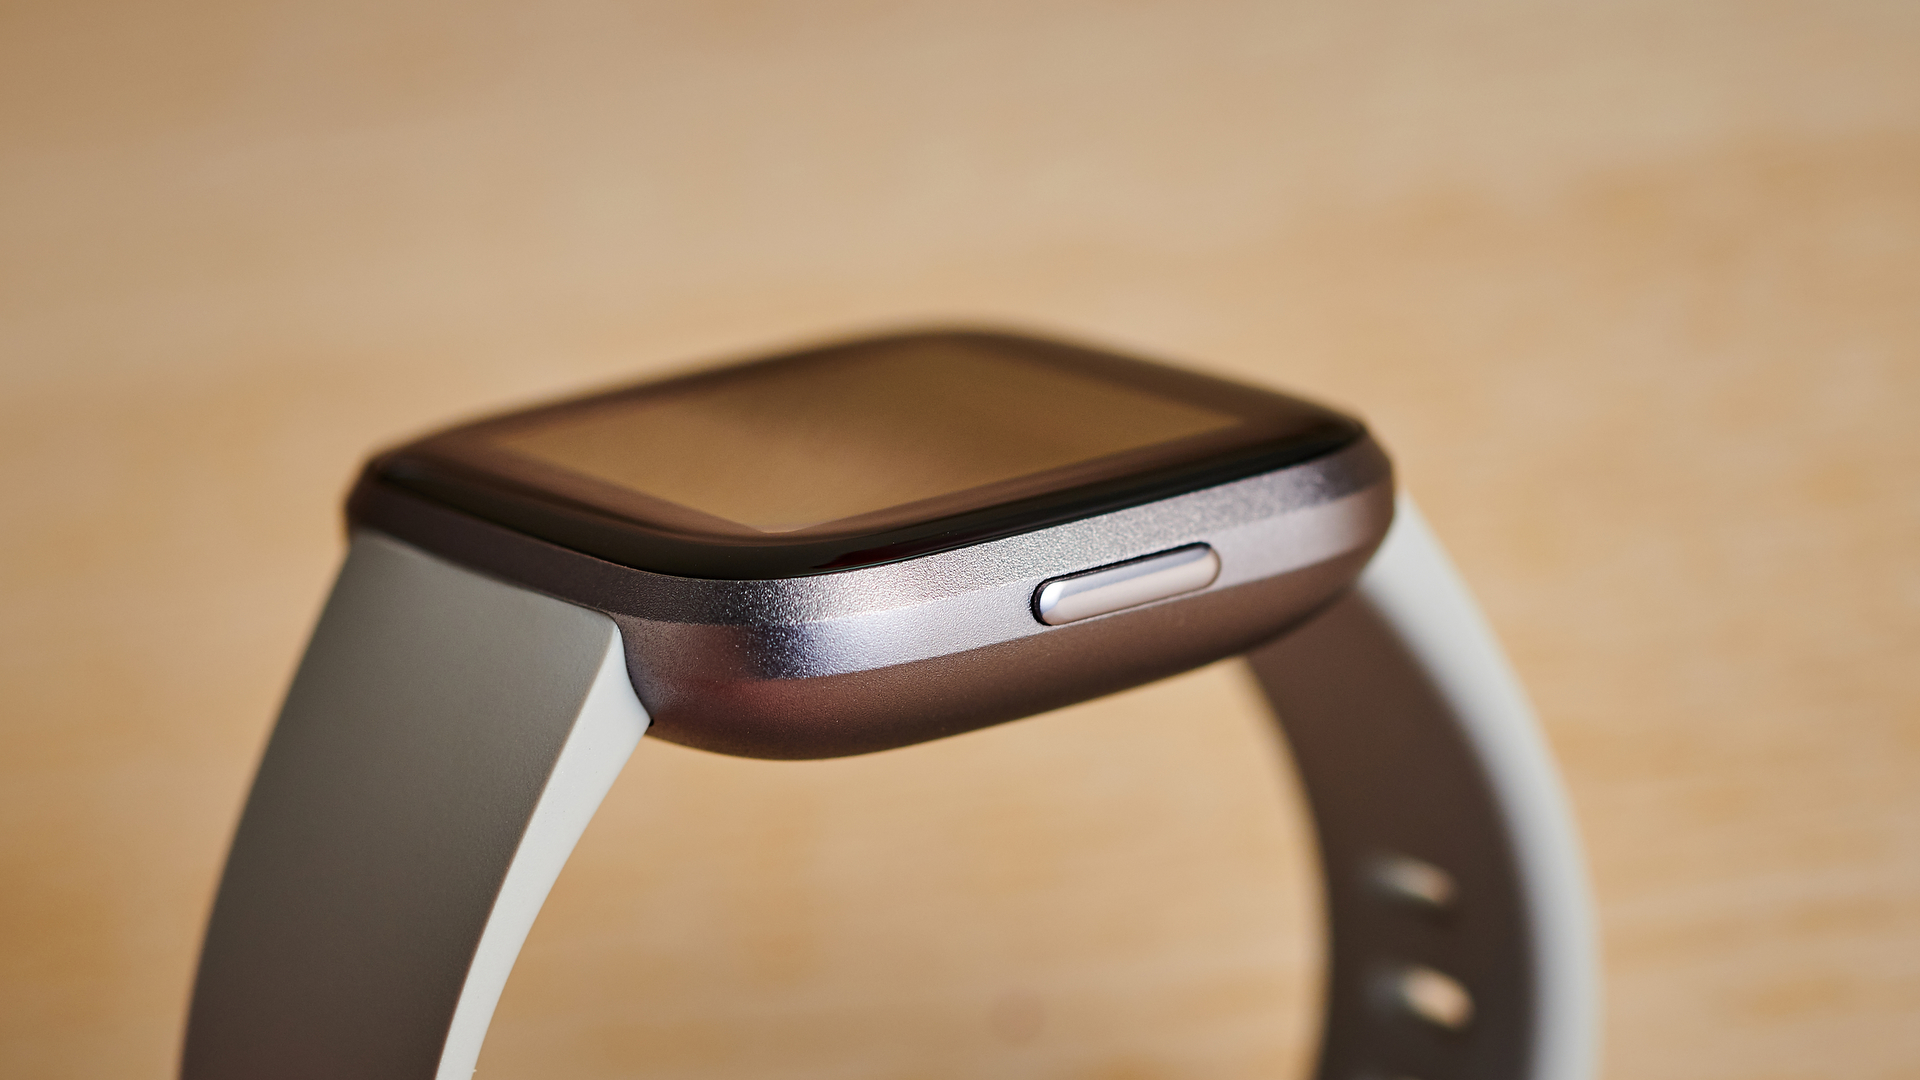 A single button gives the Versa 2 a more minimalist look